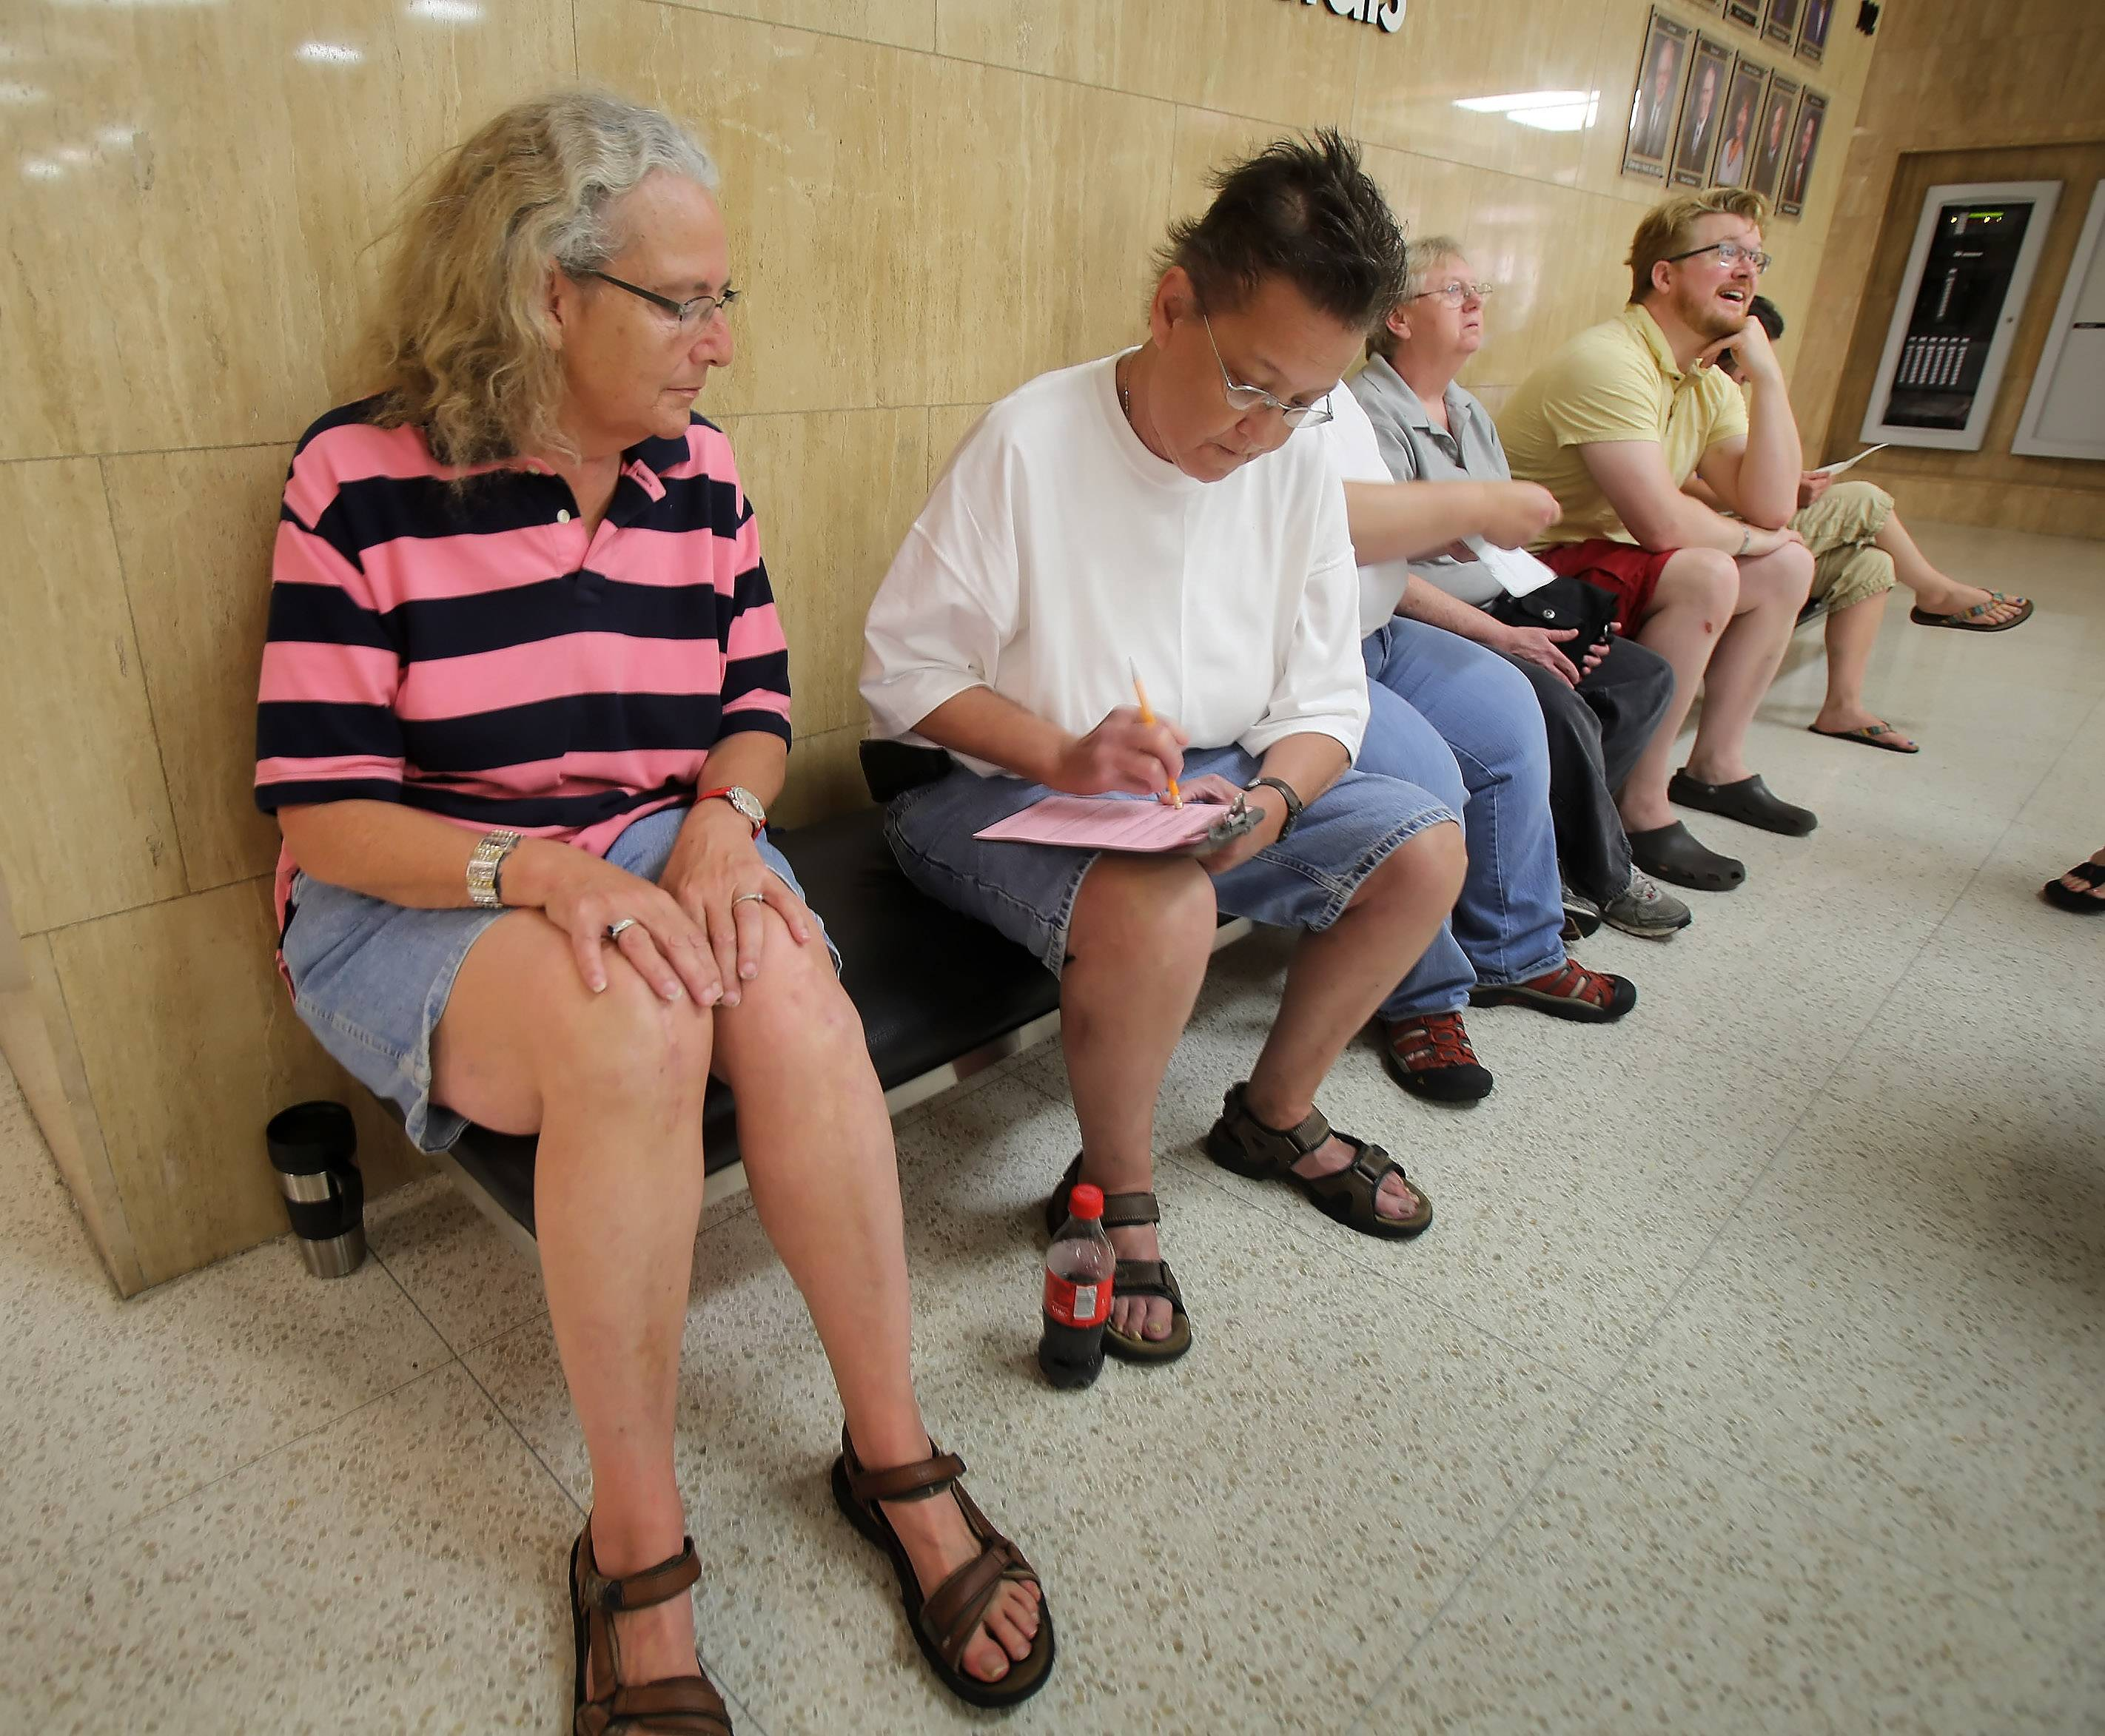 LaDean Lines and Beth Kelley of Waukegan fill out paperwork as they are first in line for a same-sex marriage license at the Lake County Clerk's office in Waukegan.